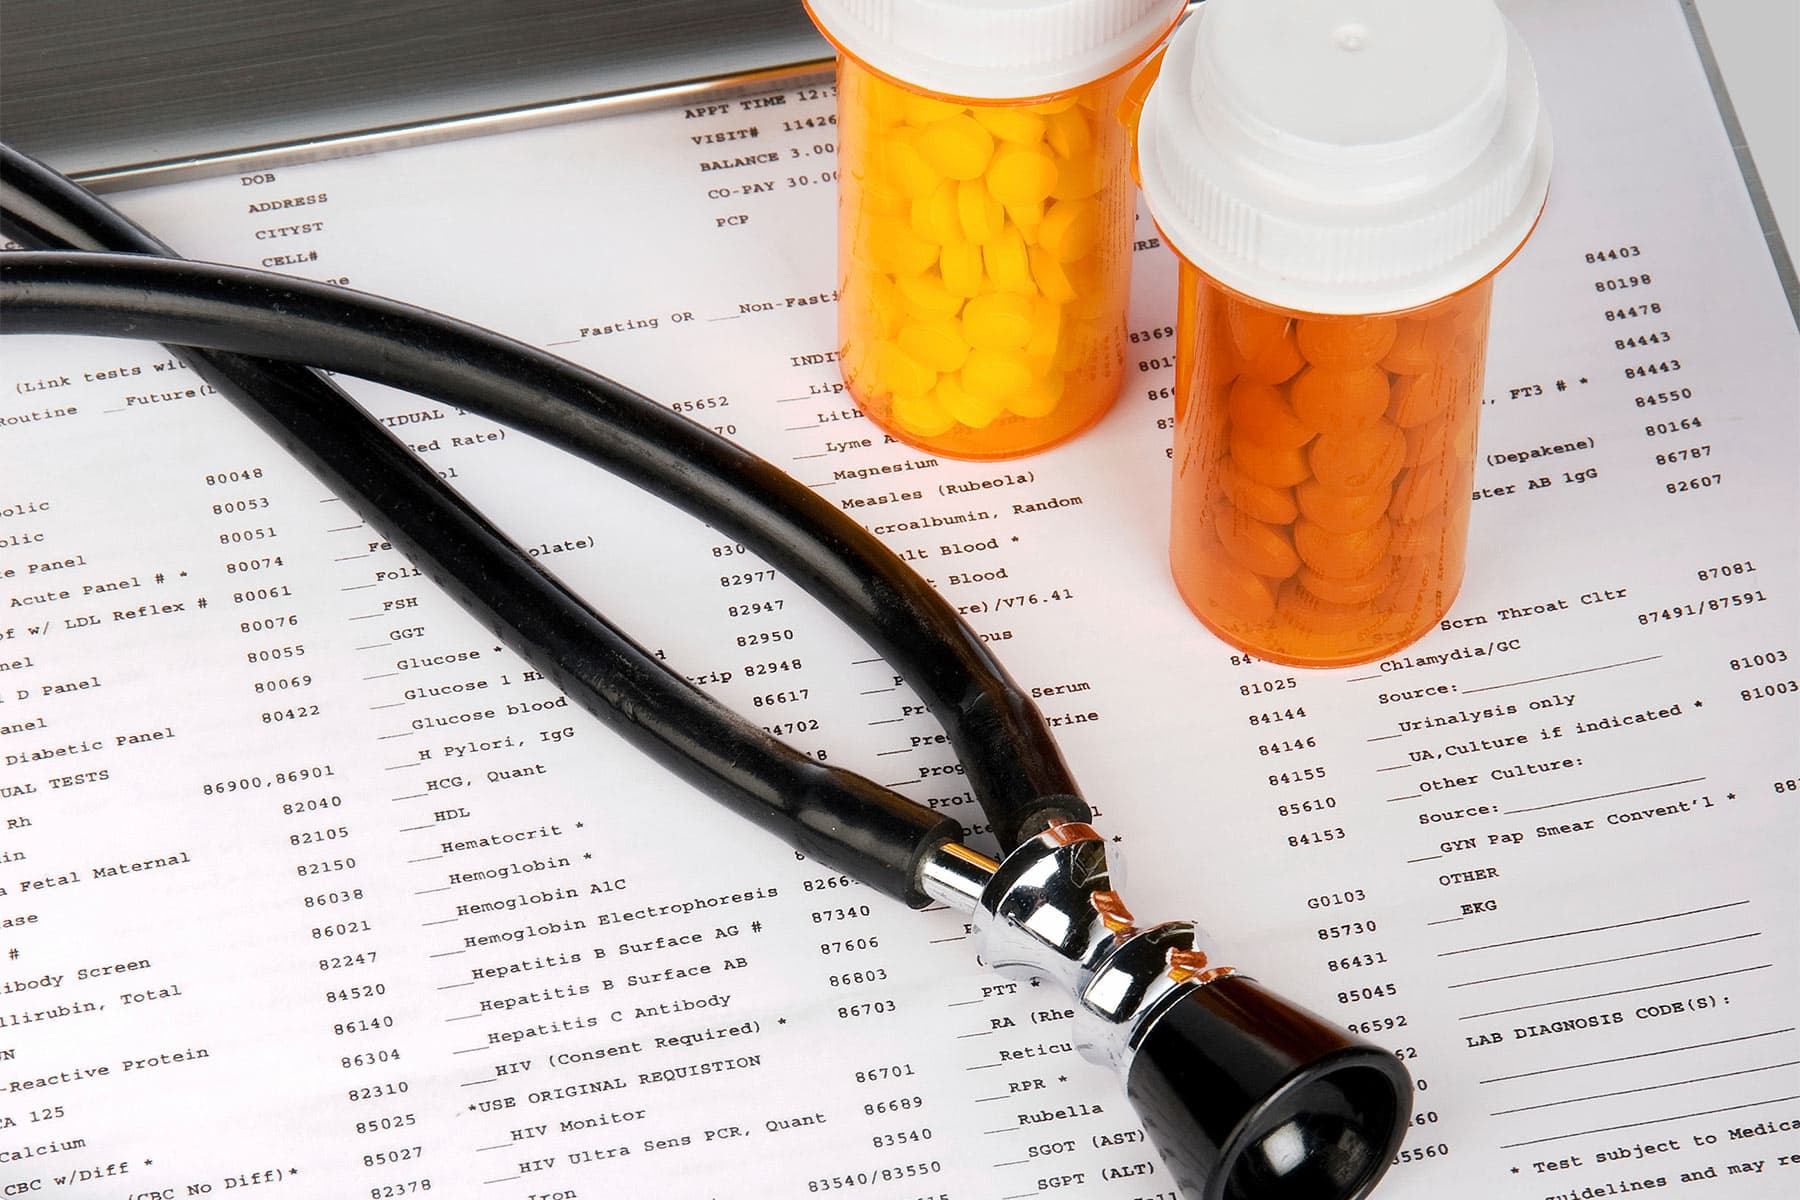 Common Diabetes Meds Tied to Complication Risk  - web md